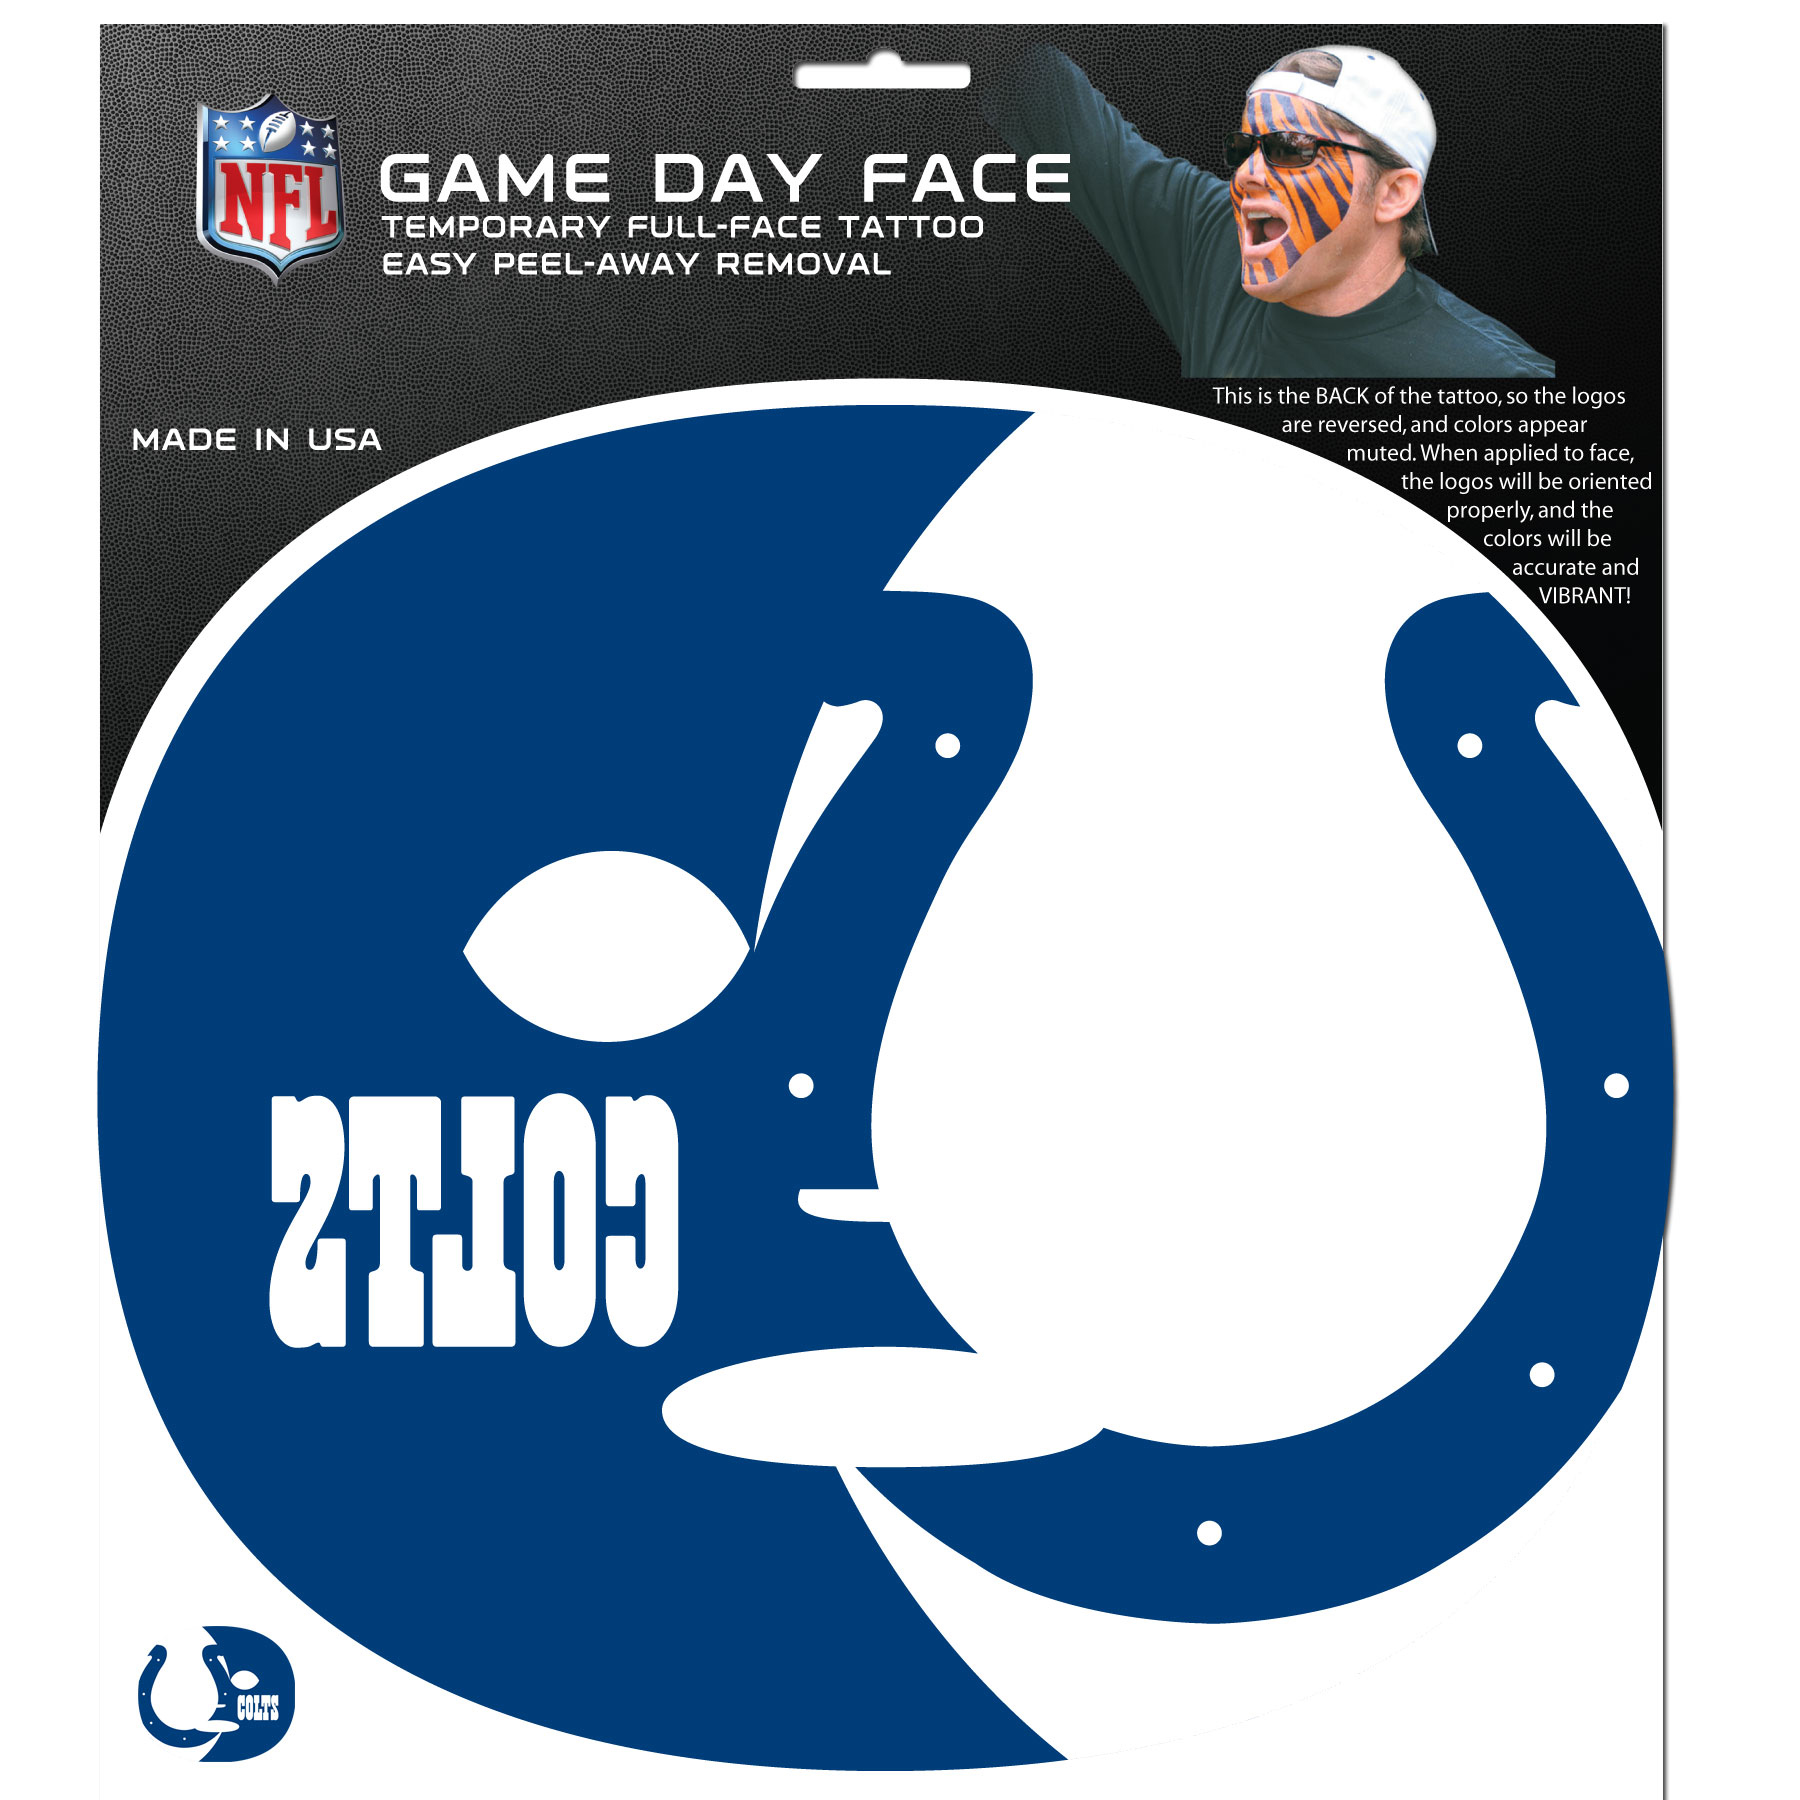 Indianapolis Colts Set of 8 Game Day Faces - No better way to show your team pride than by painting your face. Siskiyou's Game Day Face Temporary Tattoo isn't your typical face paint. It is a water based application that doesn't smudge, smear or sweat off while you're wearing it and easily peels off after you're done celebrating your team's big Win! The temporary tattoo is large enough to trim down to fit your face. Our Game Day Face Temporary Tattoo's are fun for fans of all ages. You may have seen our product before, these are the same Temporary Face Tattoos as pitched on ABC's Shark Tank.